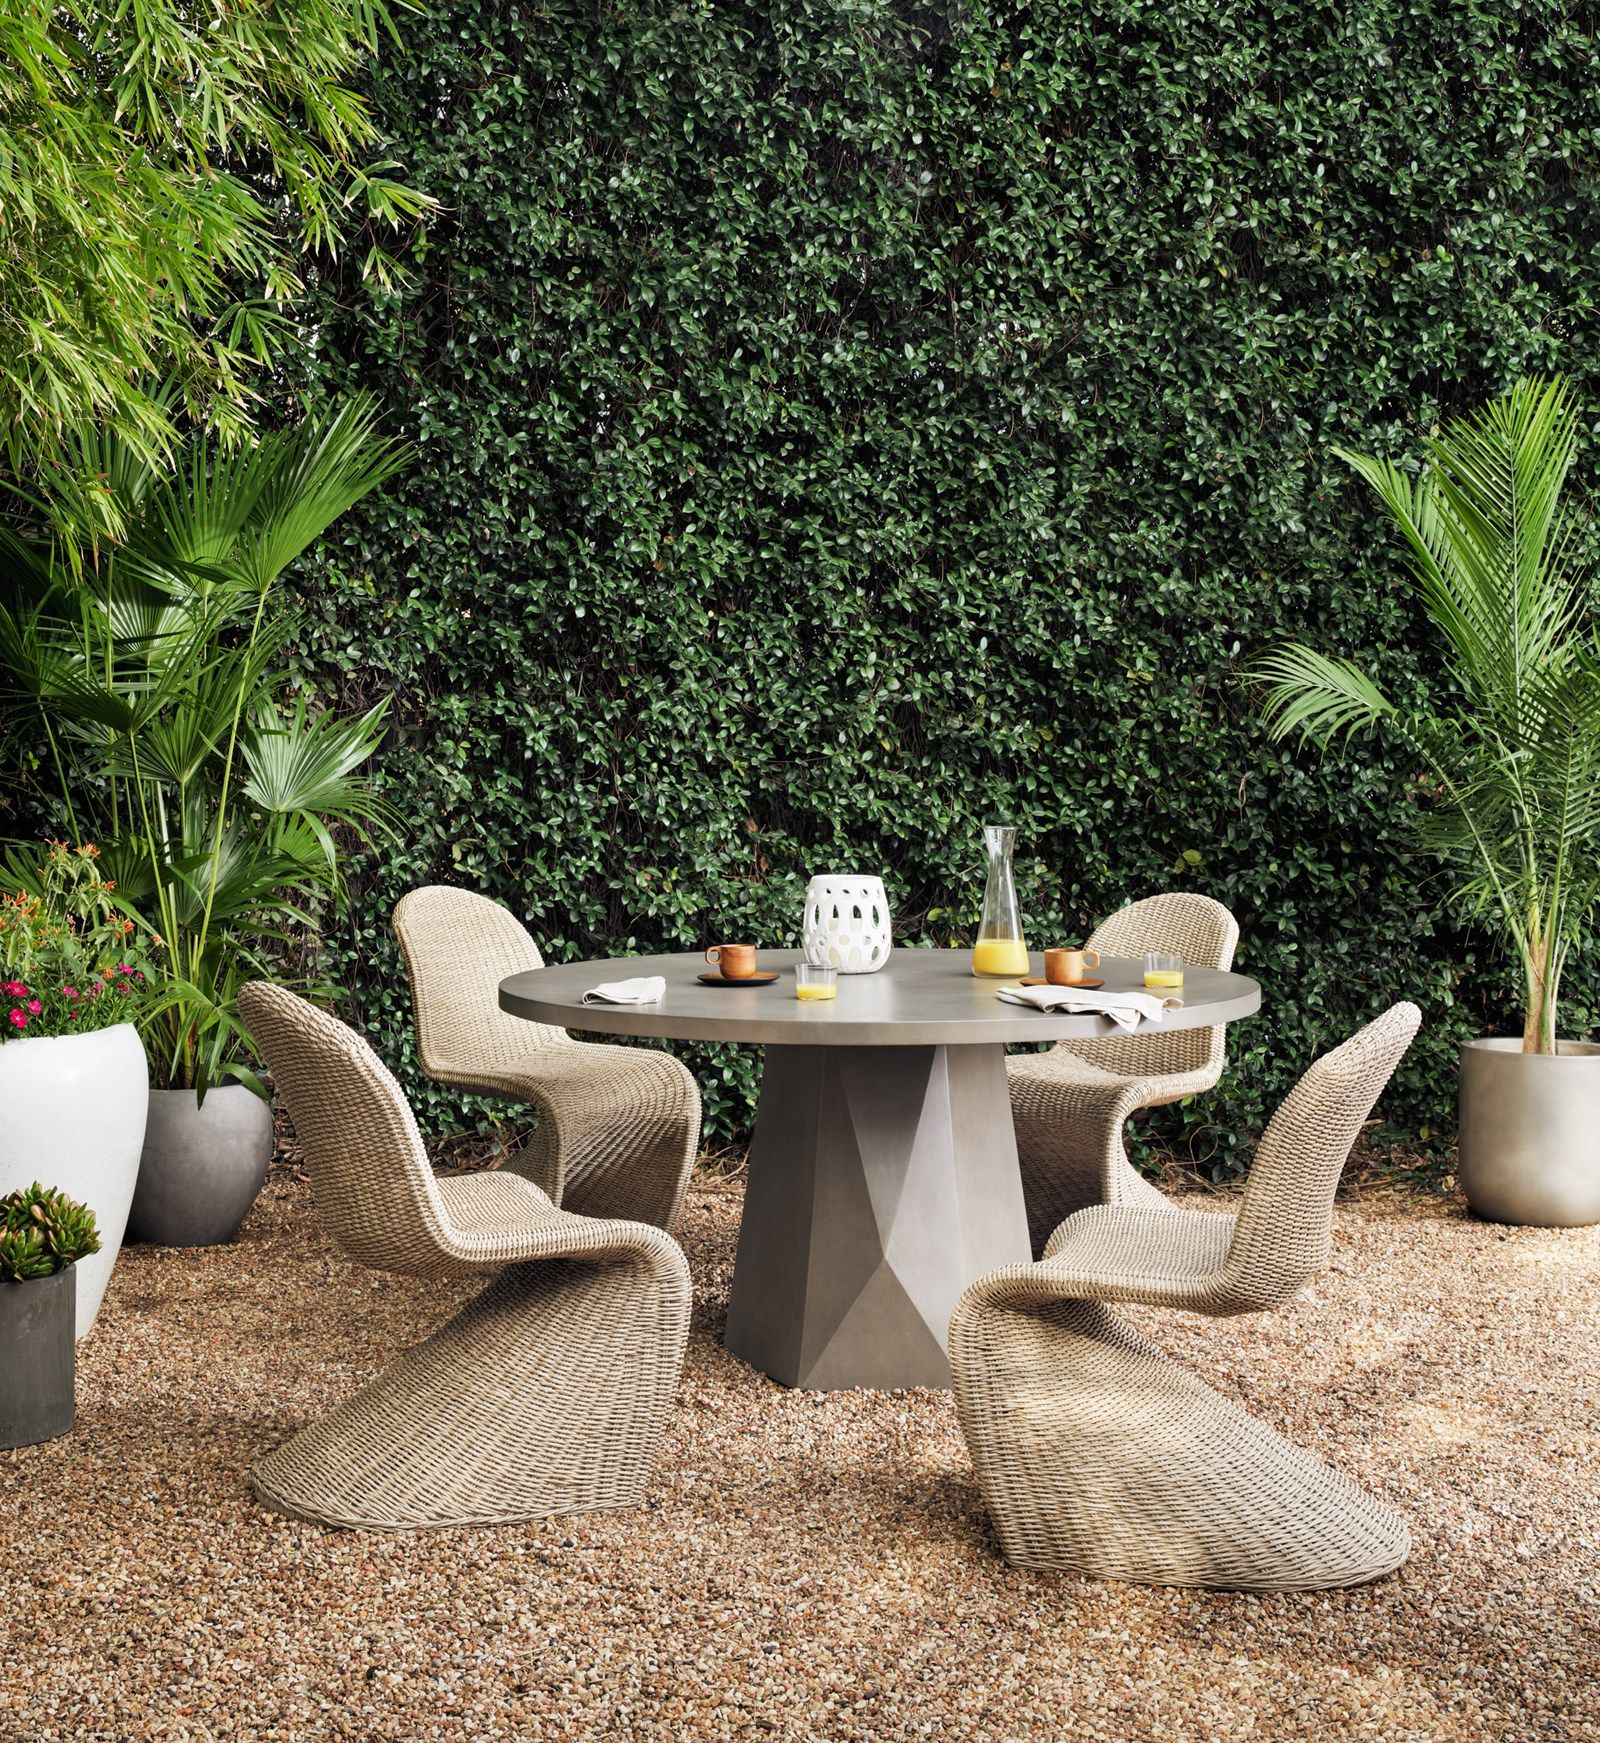 Shop Outdoor Furniture and Decor | Clayton Gray Home